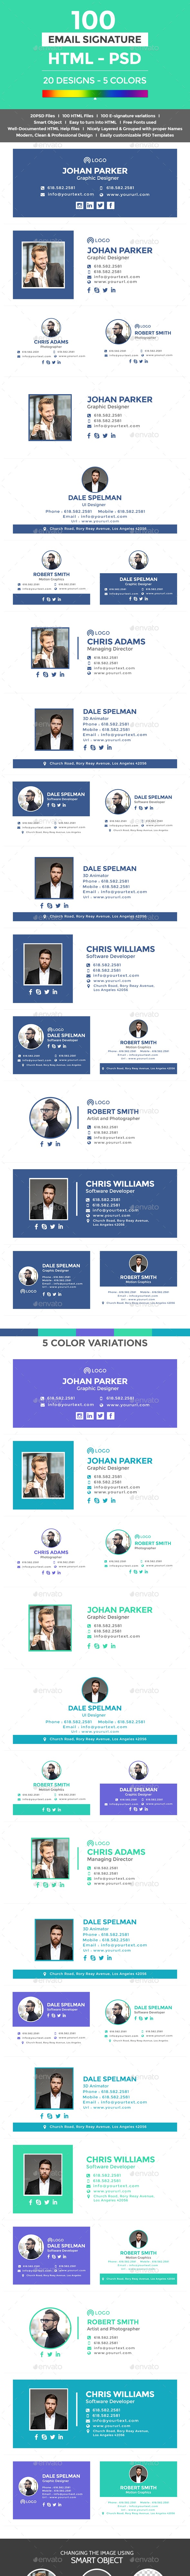 Email Signature Templates - 100 PSD and HTML Files - Miscellaneous Web Elements